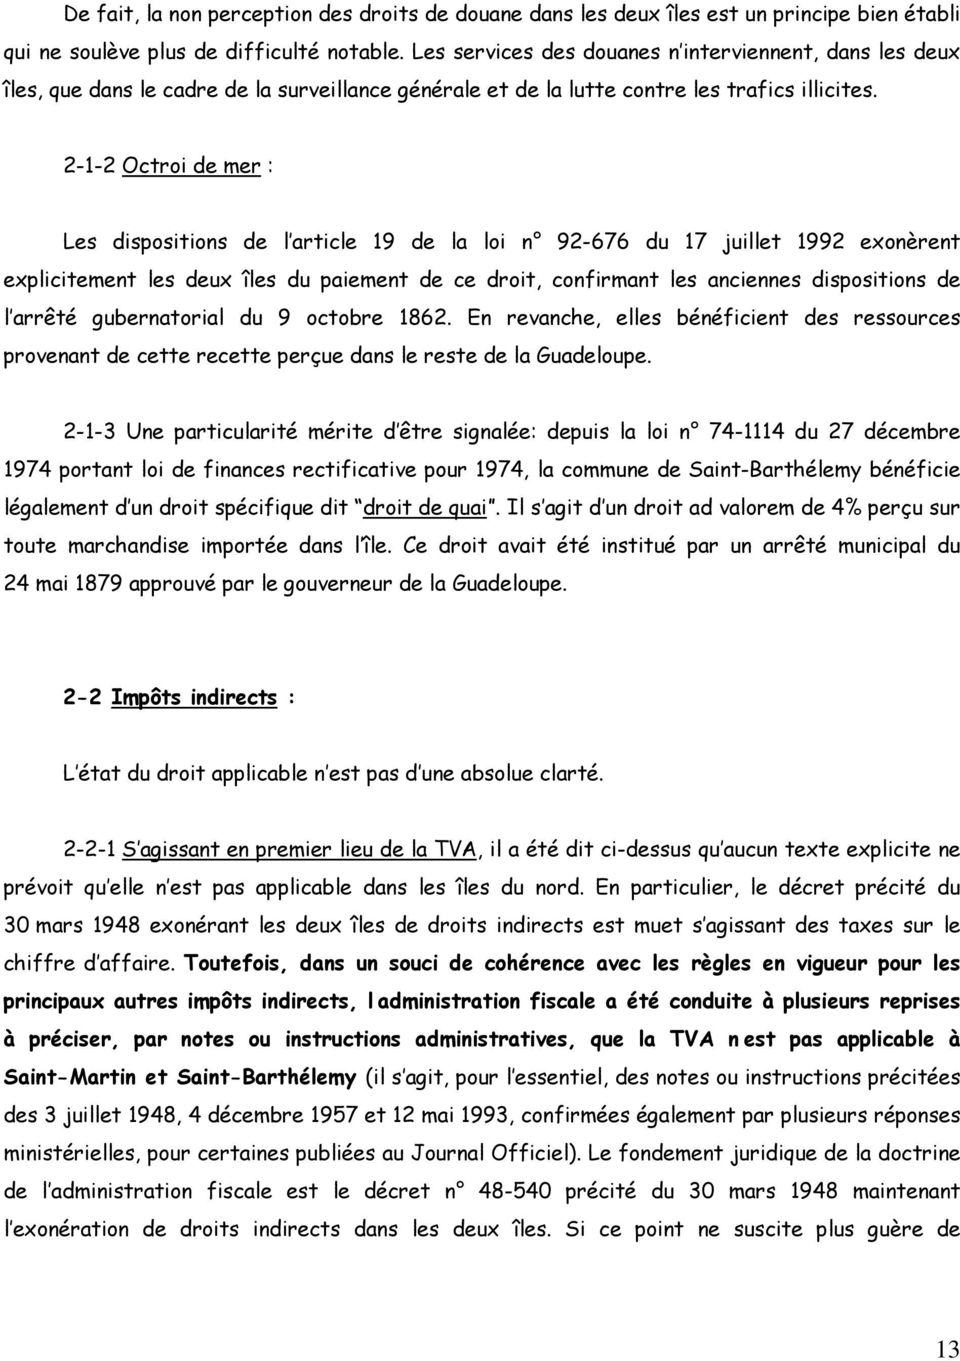 2-1-2 Octroi de mer : Les dispositions de l article 19 de la loi n 92-676 du 17 juillet 1992 exonèrent explicitement les deux îles du paiement de ce droit, confirmant les anciennes dispositions de l